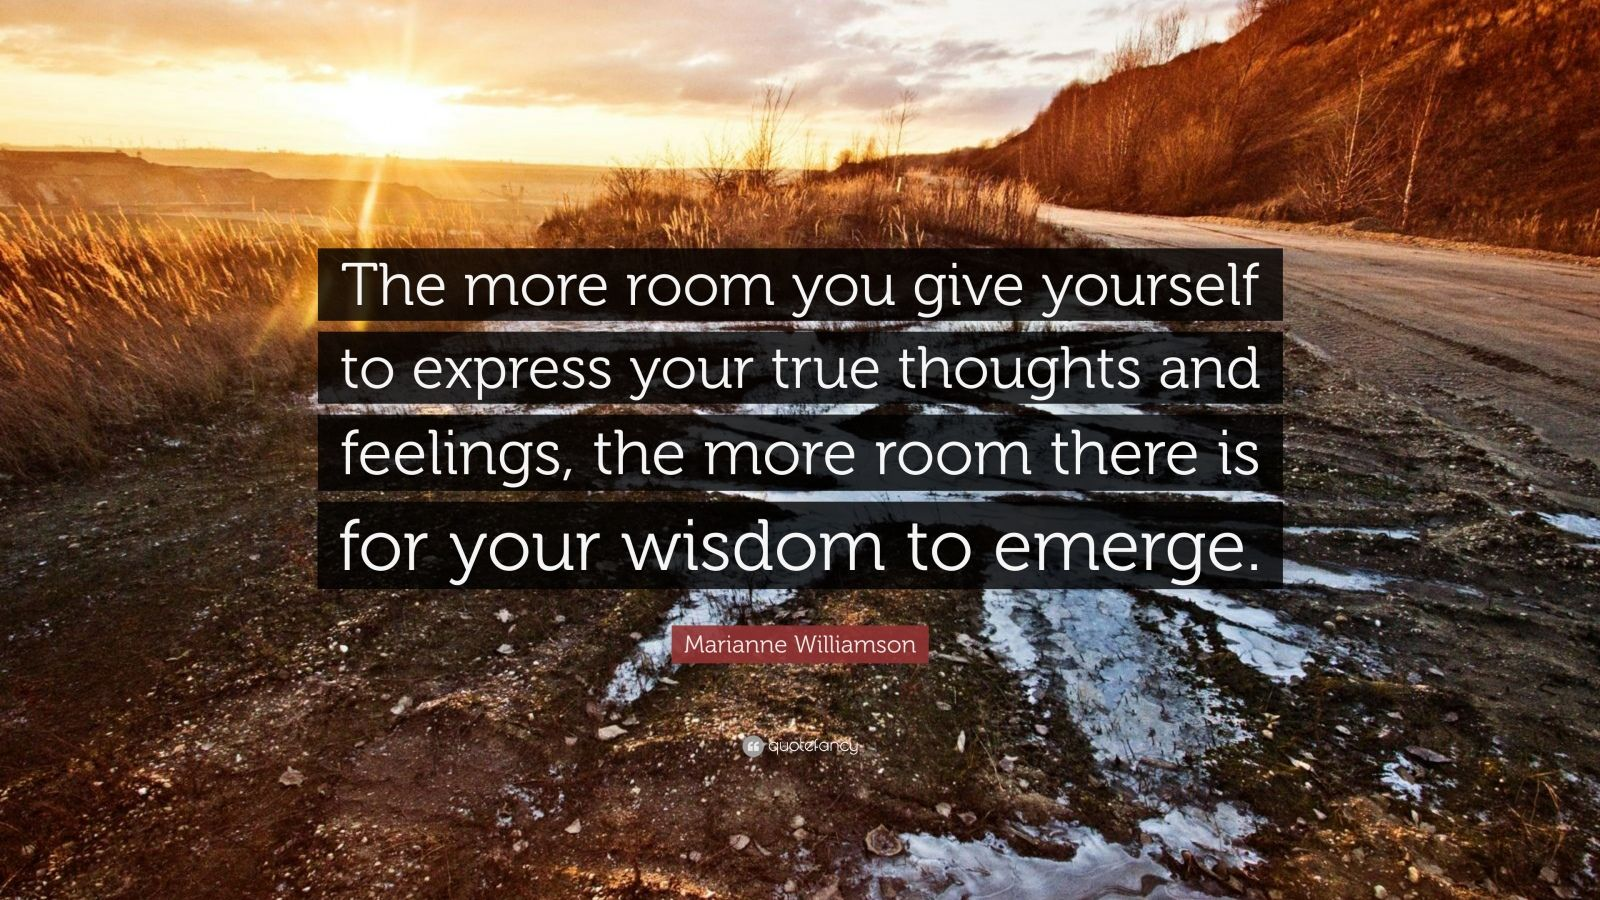 """Marianne Williamson Quote: """"The more room you give yourself to express your true thoughts and feelings, the more room there is for your wisdom to emerge."""""""